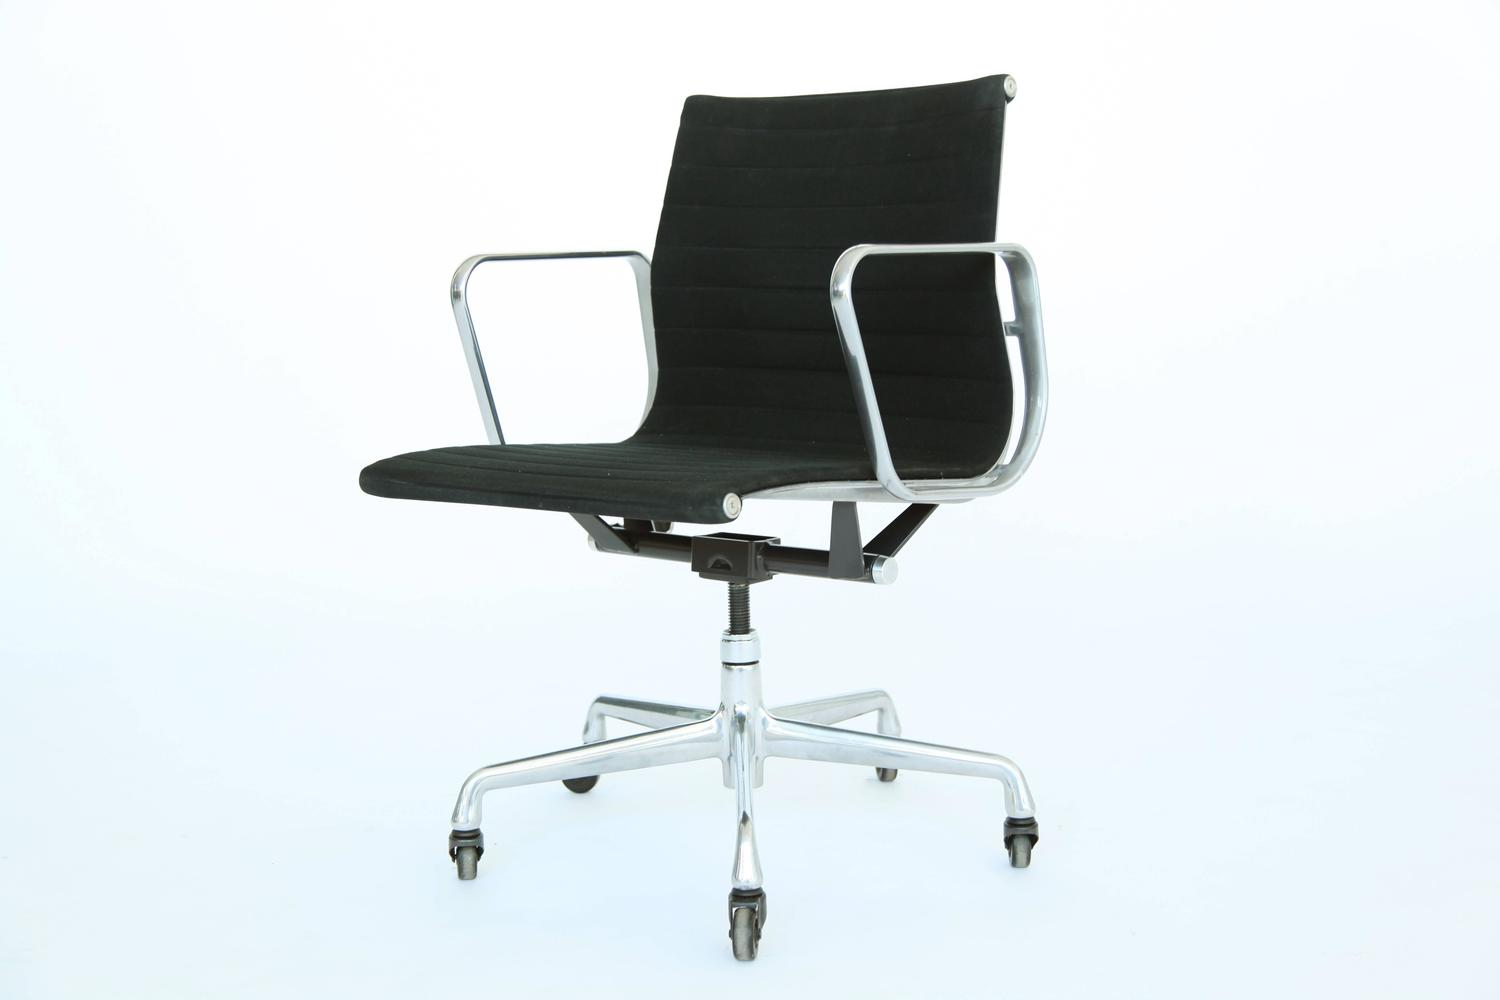 conference chairs for sale revolving chair manufacturers in coimbatore eames aluminum group desk at 1stdibs